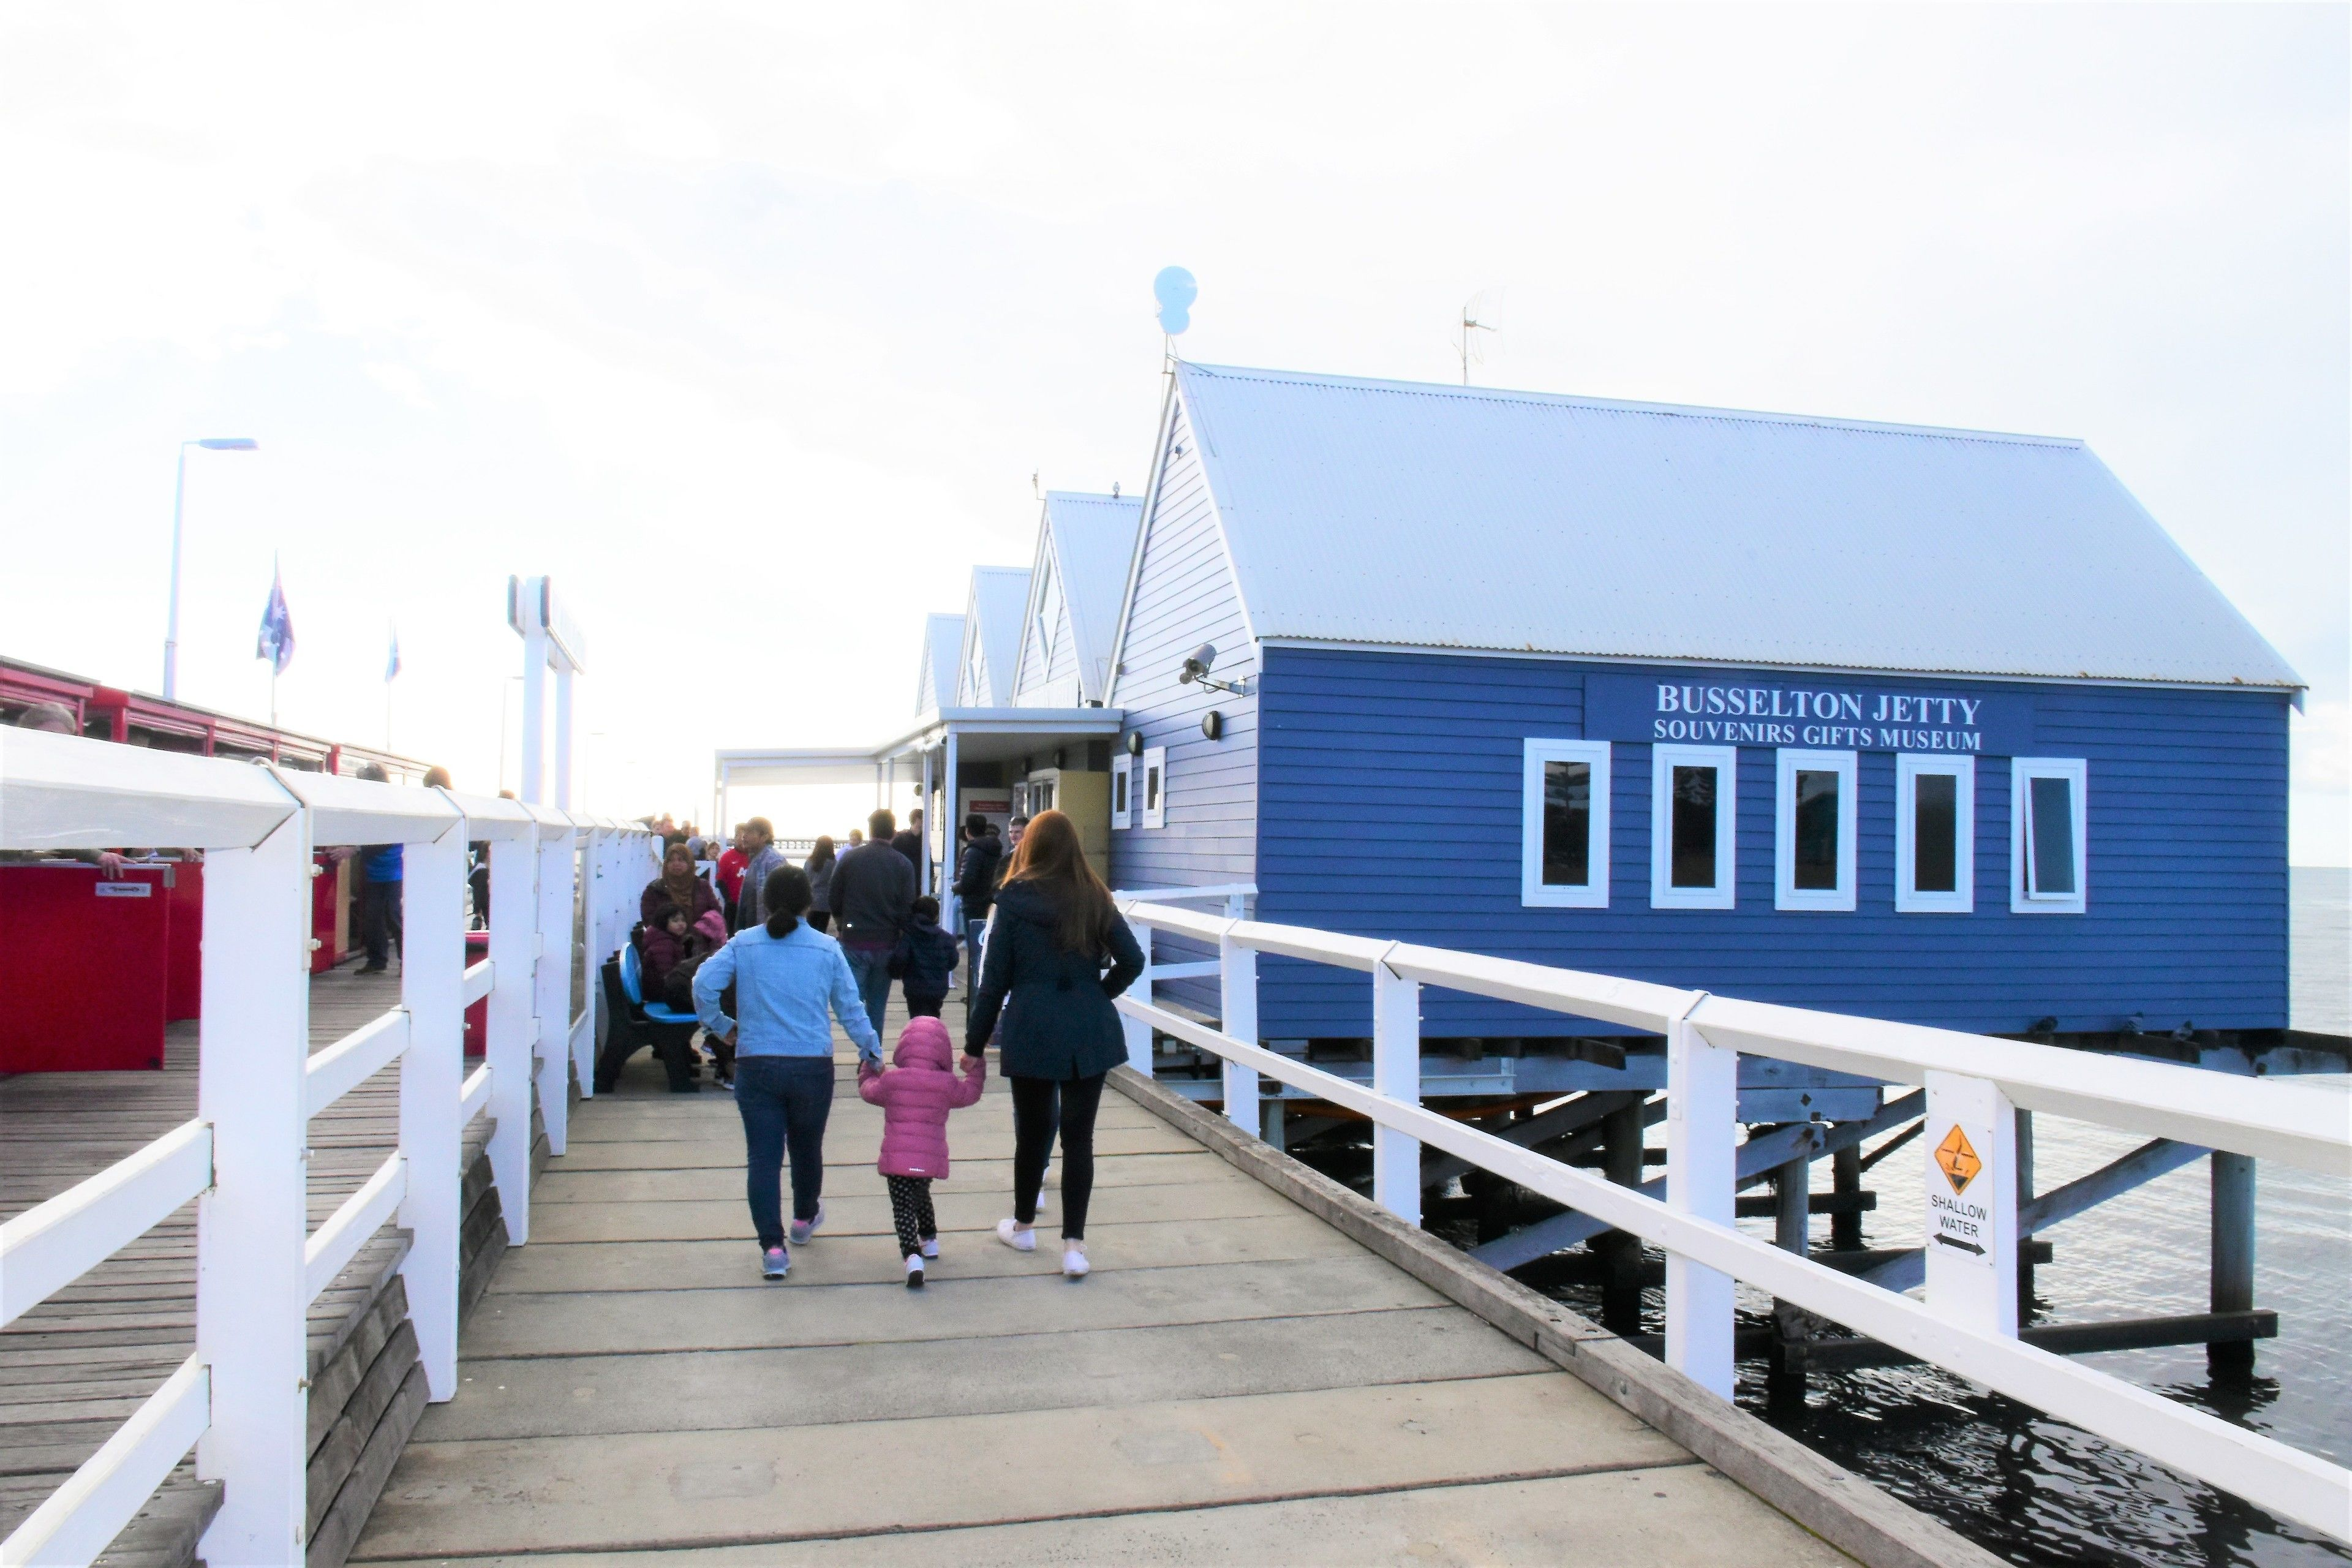 Busselton Jetty souvenirs and gifts museum